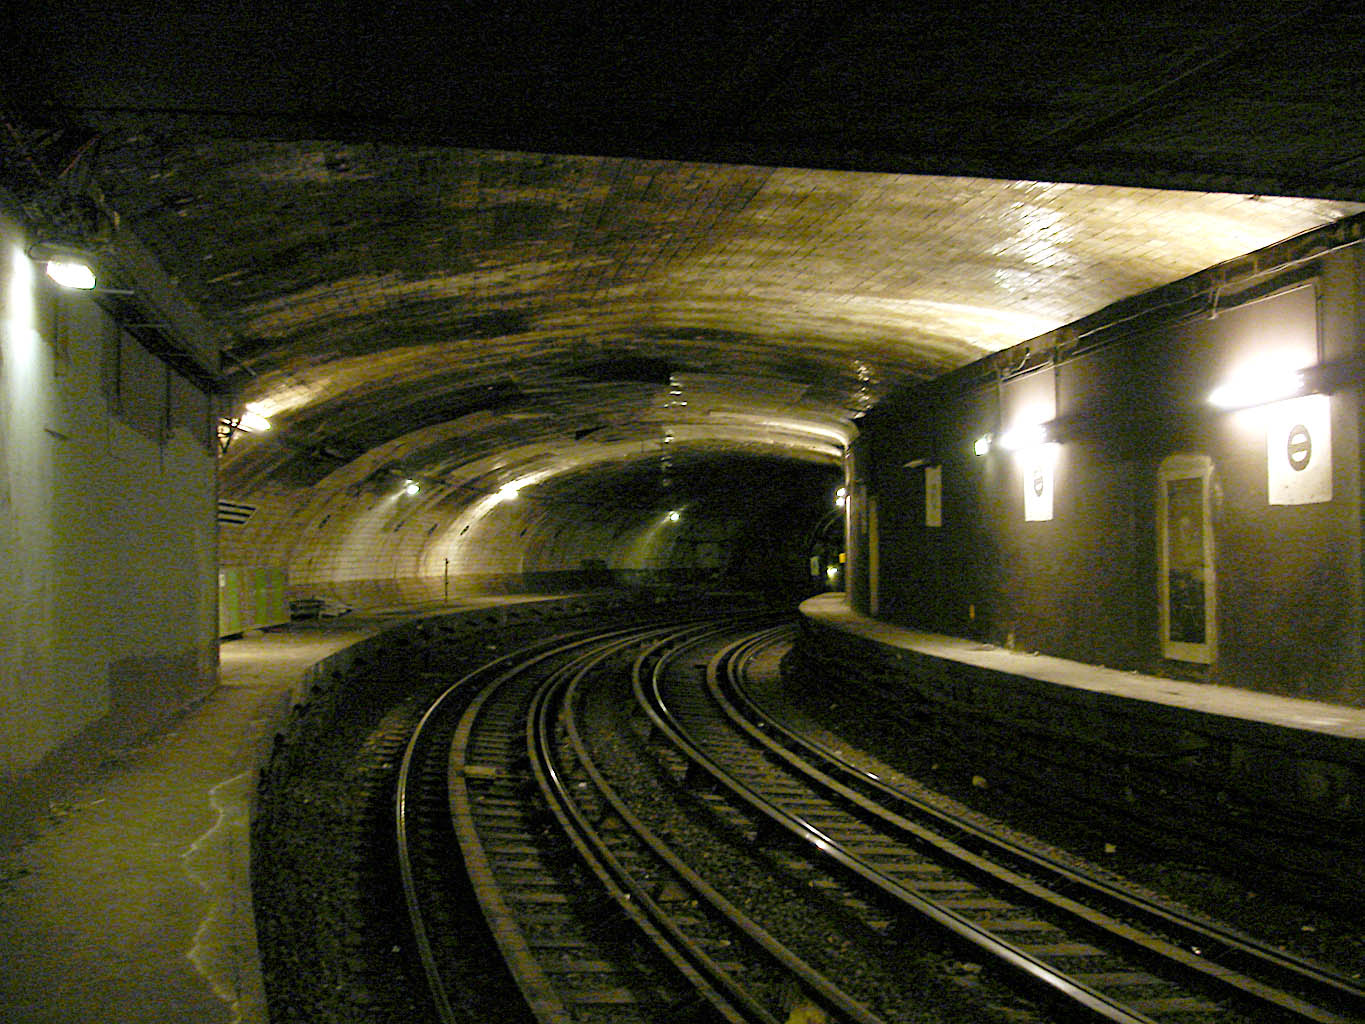 http://upload.wikimedia.org/wikipedia/commons/b/b6/Metro_de_Paris_-_Ligne_2_-_Victor_Hugo_-_Station_abandonnee_01.jpg